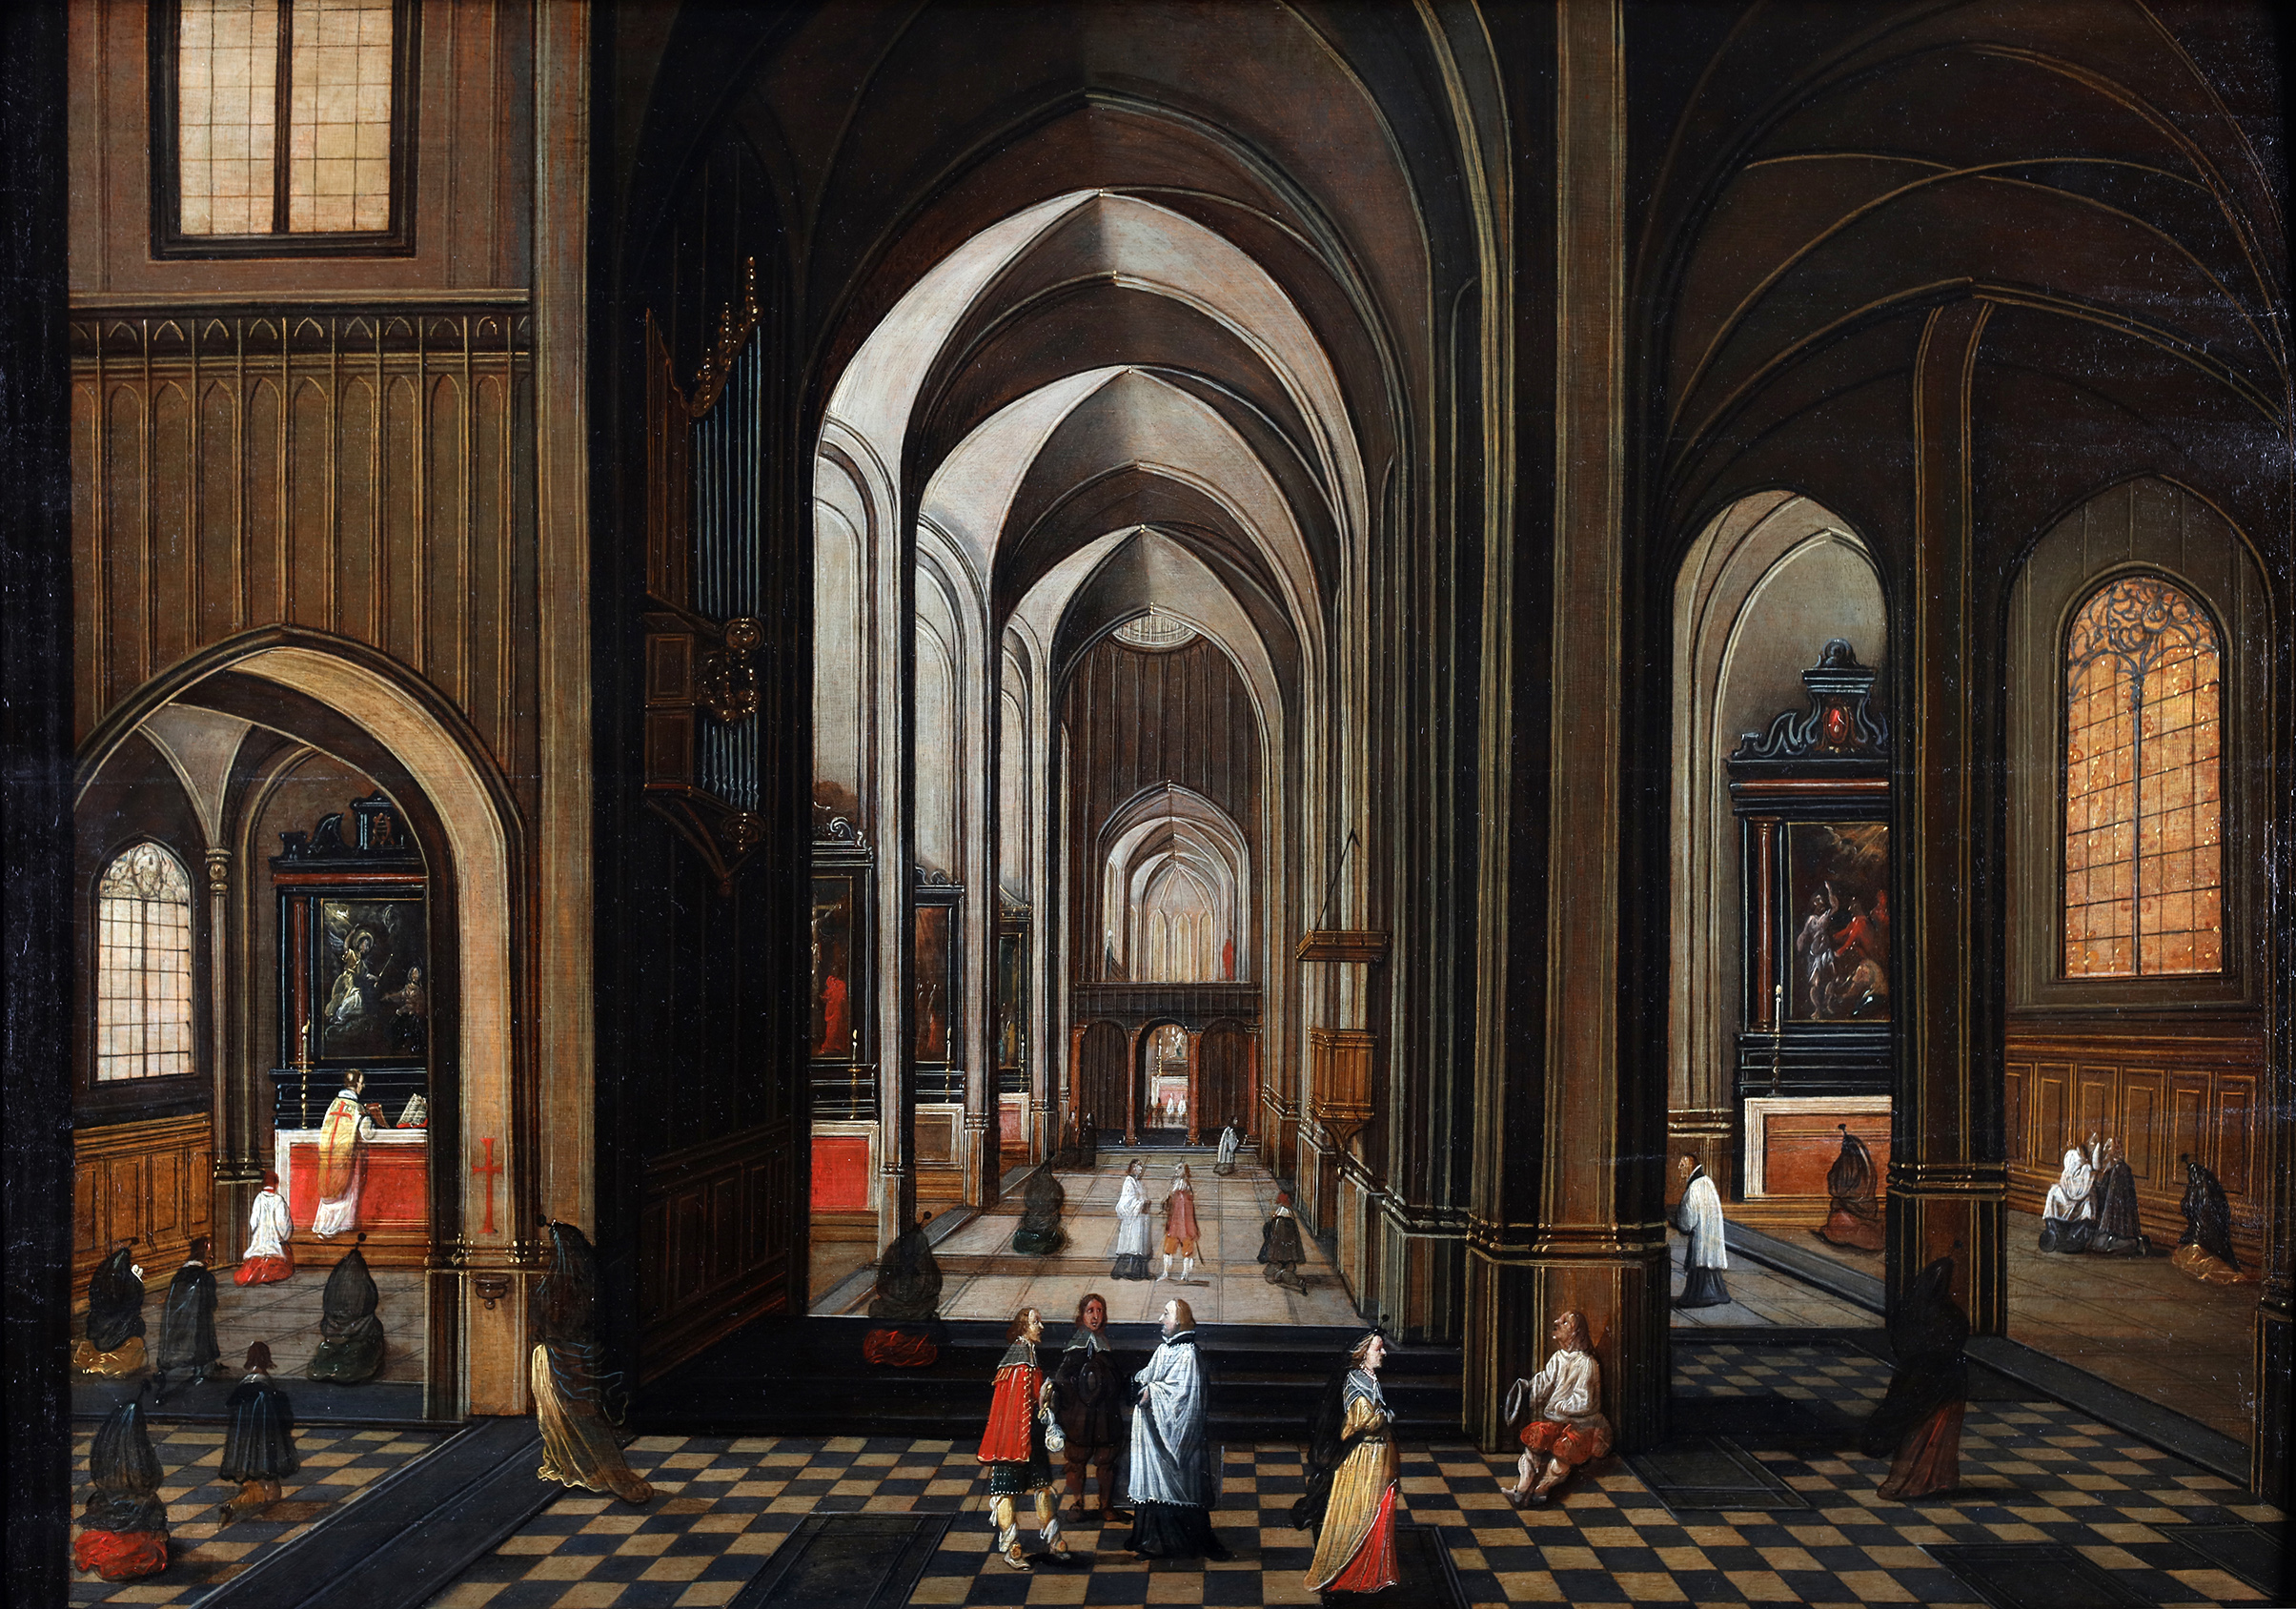 Religious activities in an interior of a Flemish cathedral